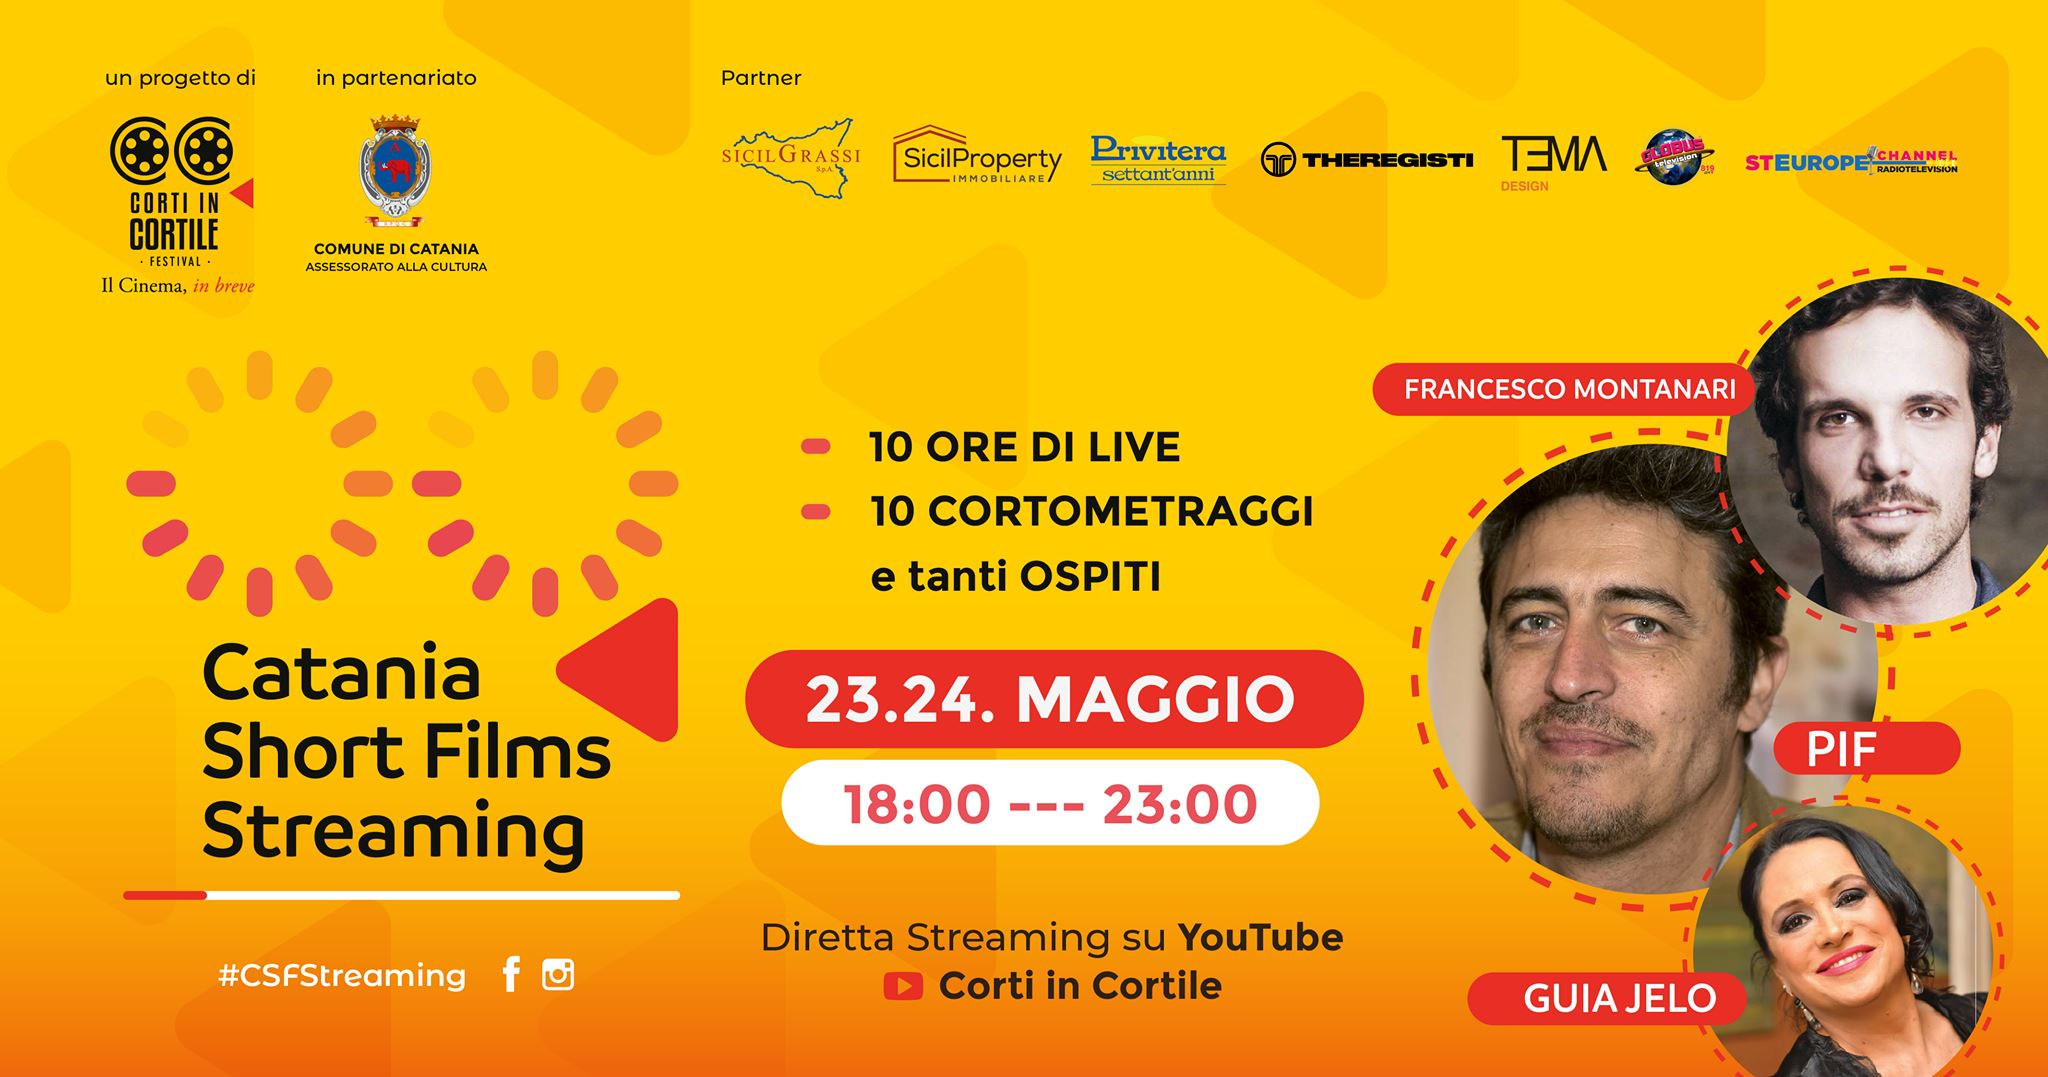 Corti in Cortile presenta Catania Short Films Streaming I Edizione